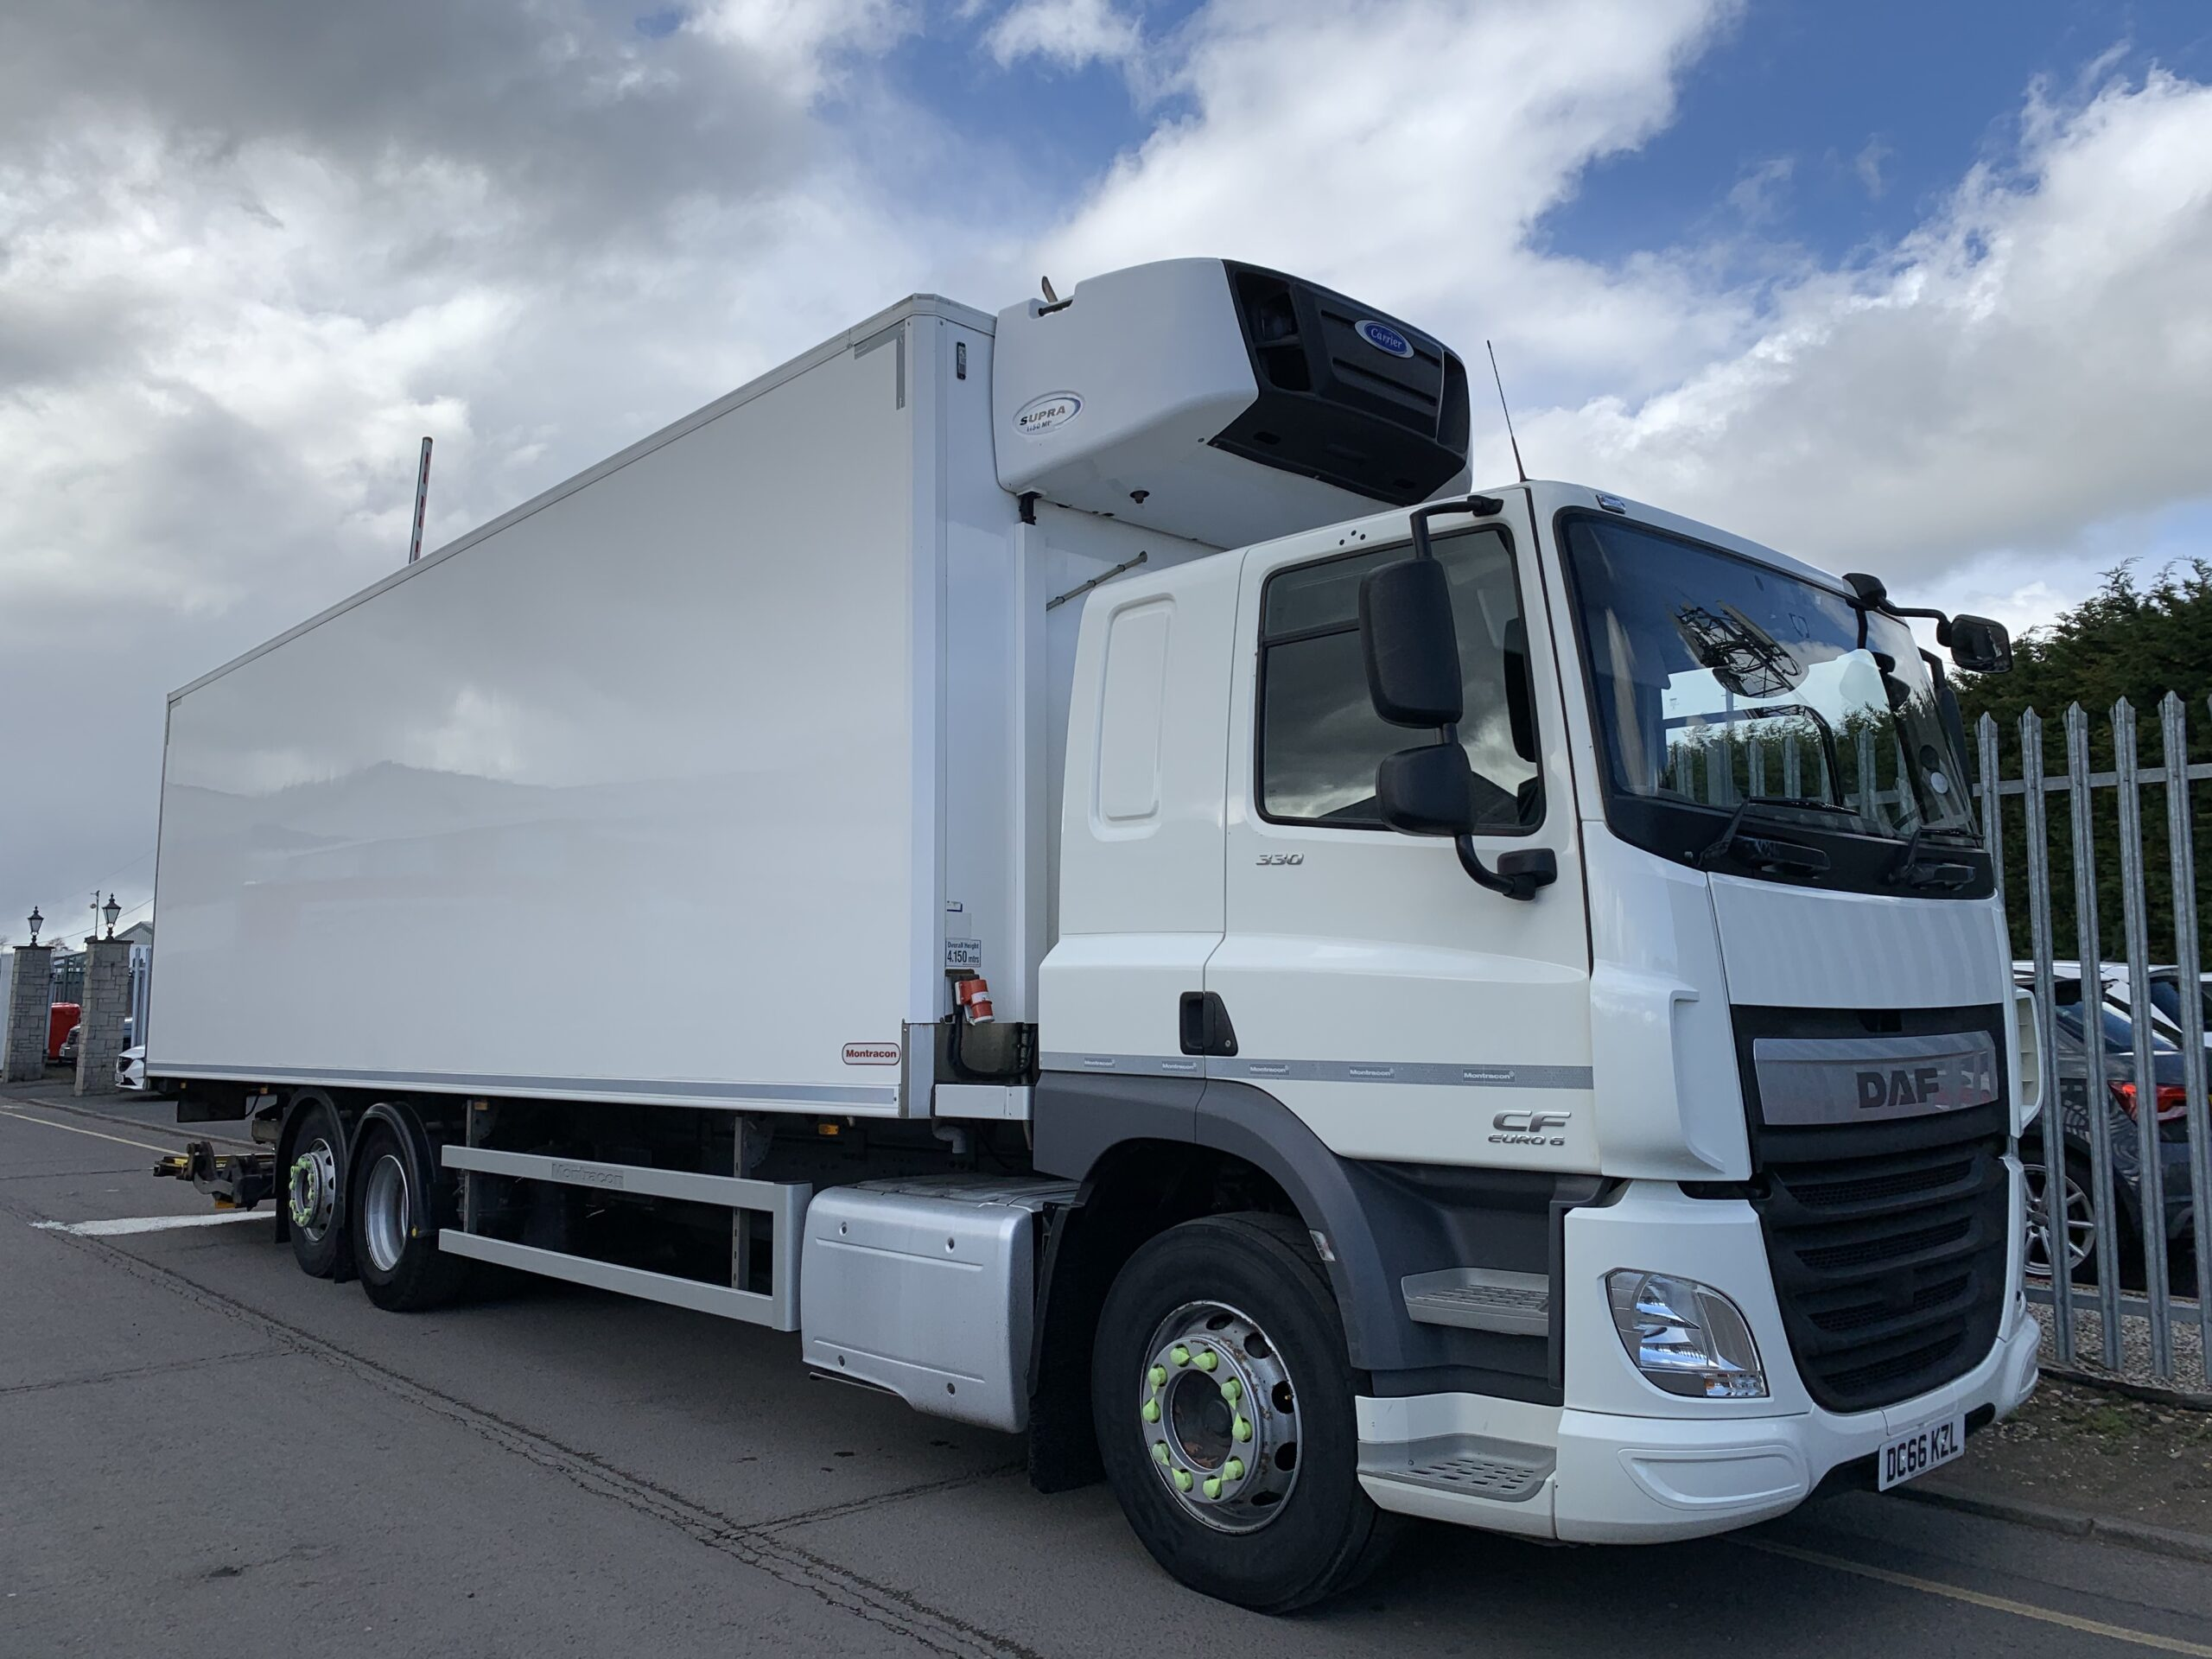 2016 (66) DAF CF Fridge, 26 Tonne, Euro 6, 330bhp, Automatic Gearbox, Dhollandia Tuckunder Tailift (1500kg Capacity), Montracon Body, Carrier Supra 1150Mt Fridge Engine, Converted to Single Compartment, Single Sleeper Cab, Xtra Comfort Mattress, Steering Wheel Controls, Low Mileage, Choice & Warranty Available.